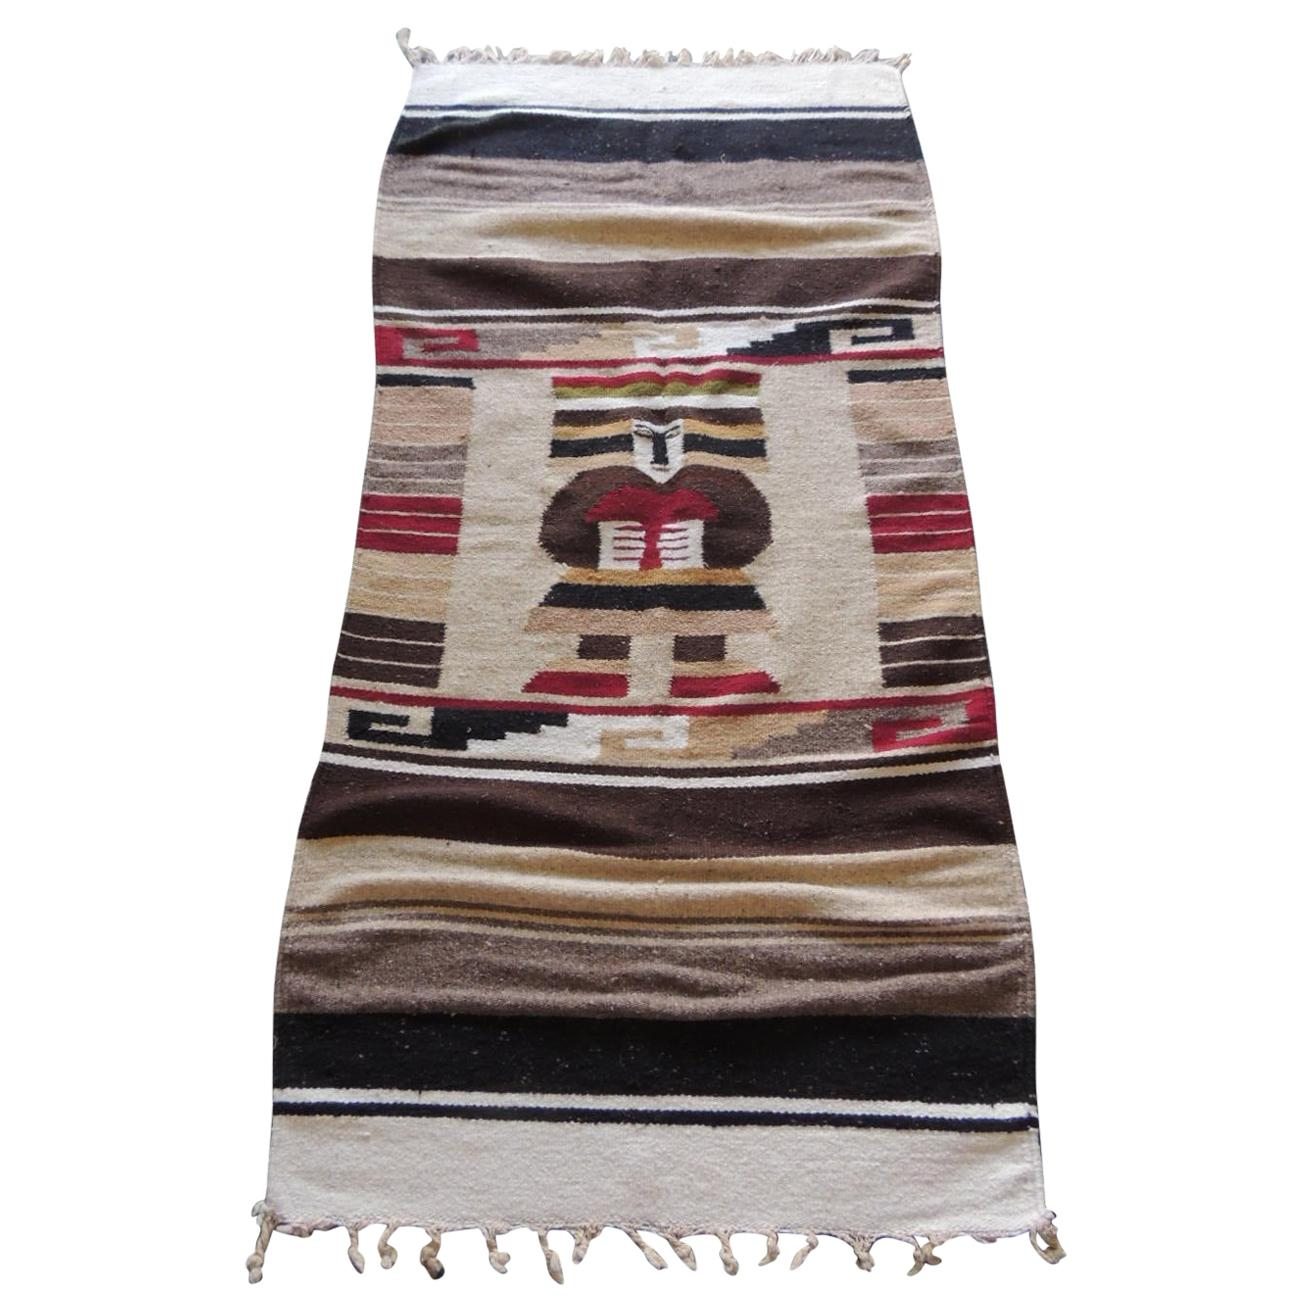 Vintage Woven Peruvian Throw with Fringes